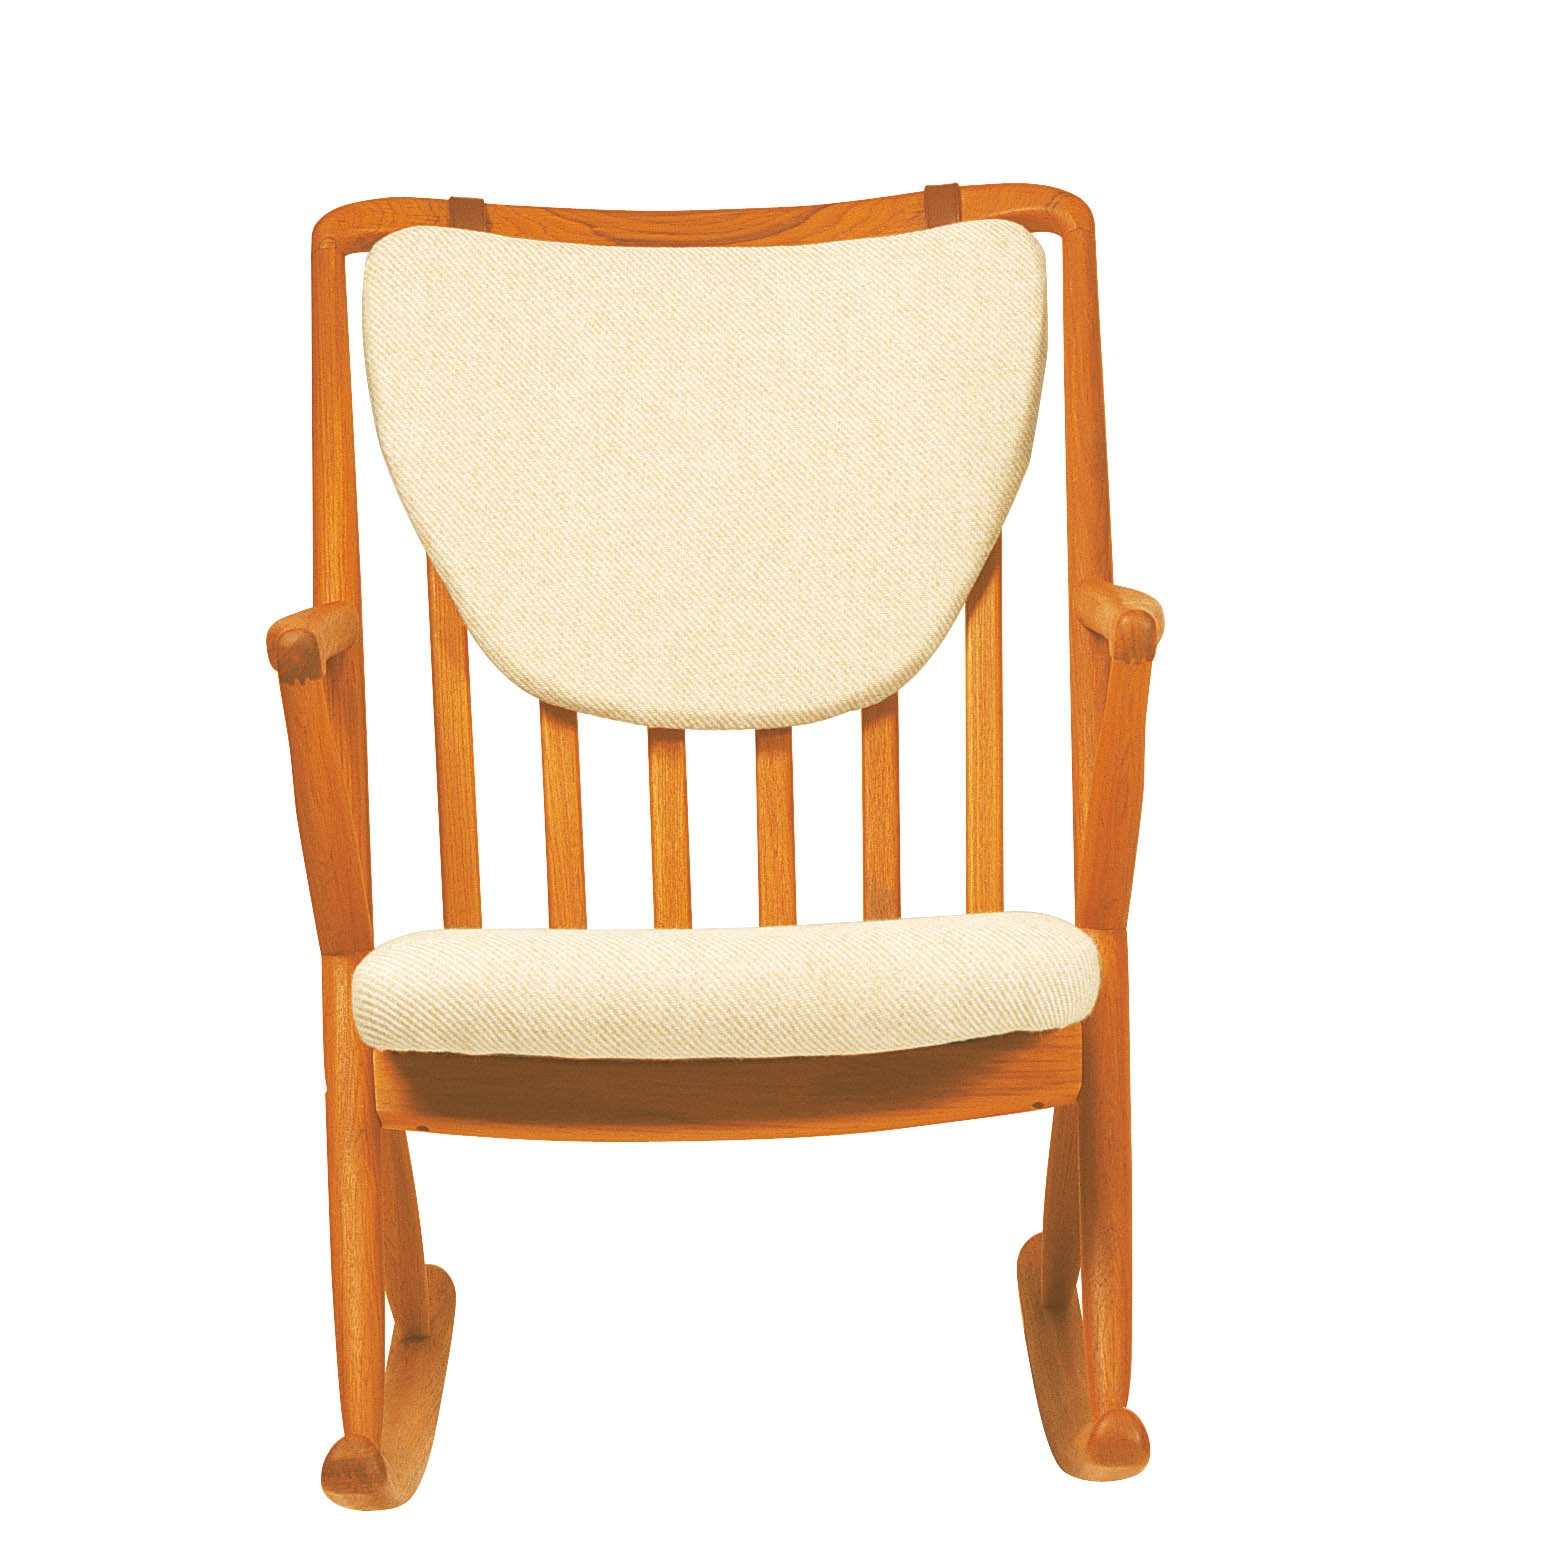 Rocking Accent Chairs Bl32 Classic Teak Rocking Chair House Of Denmark House Of Denmark